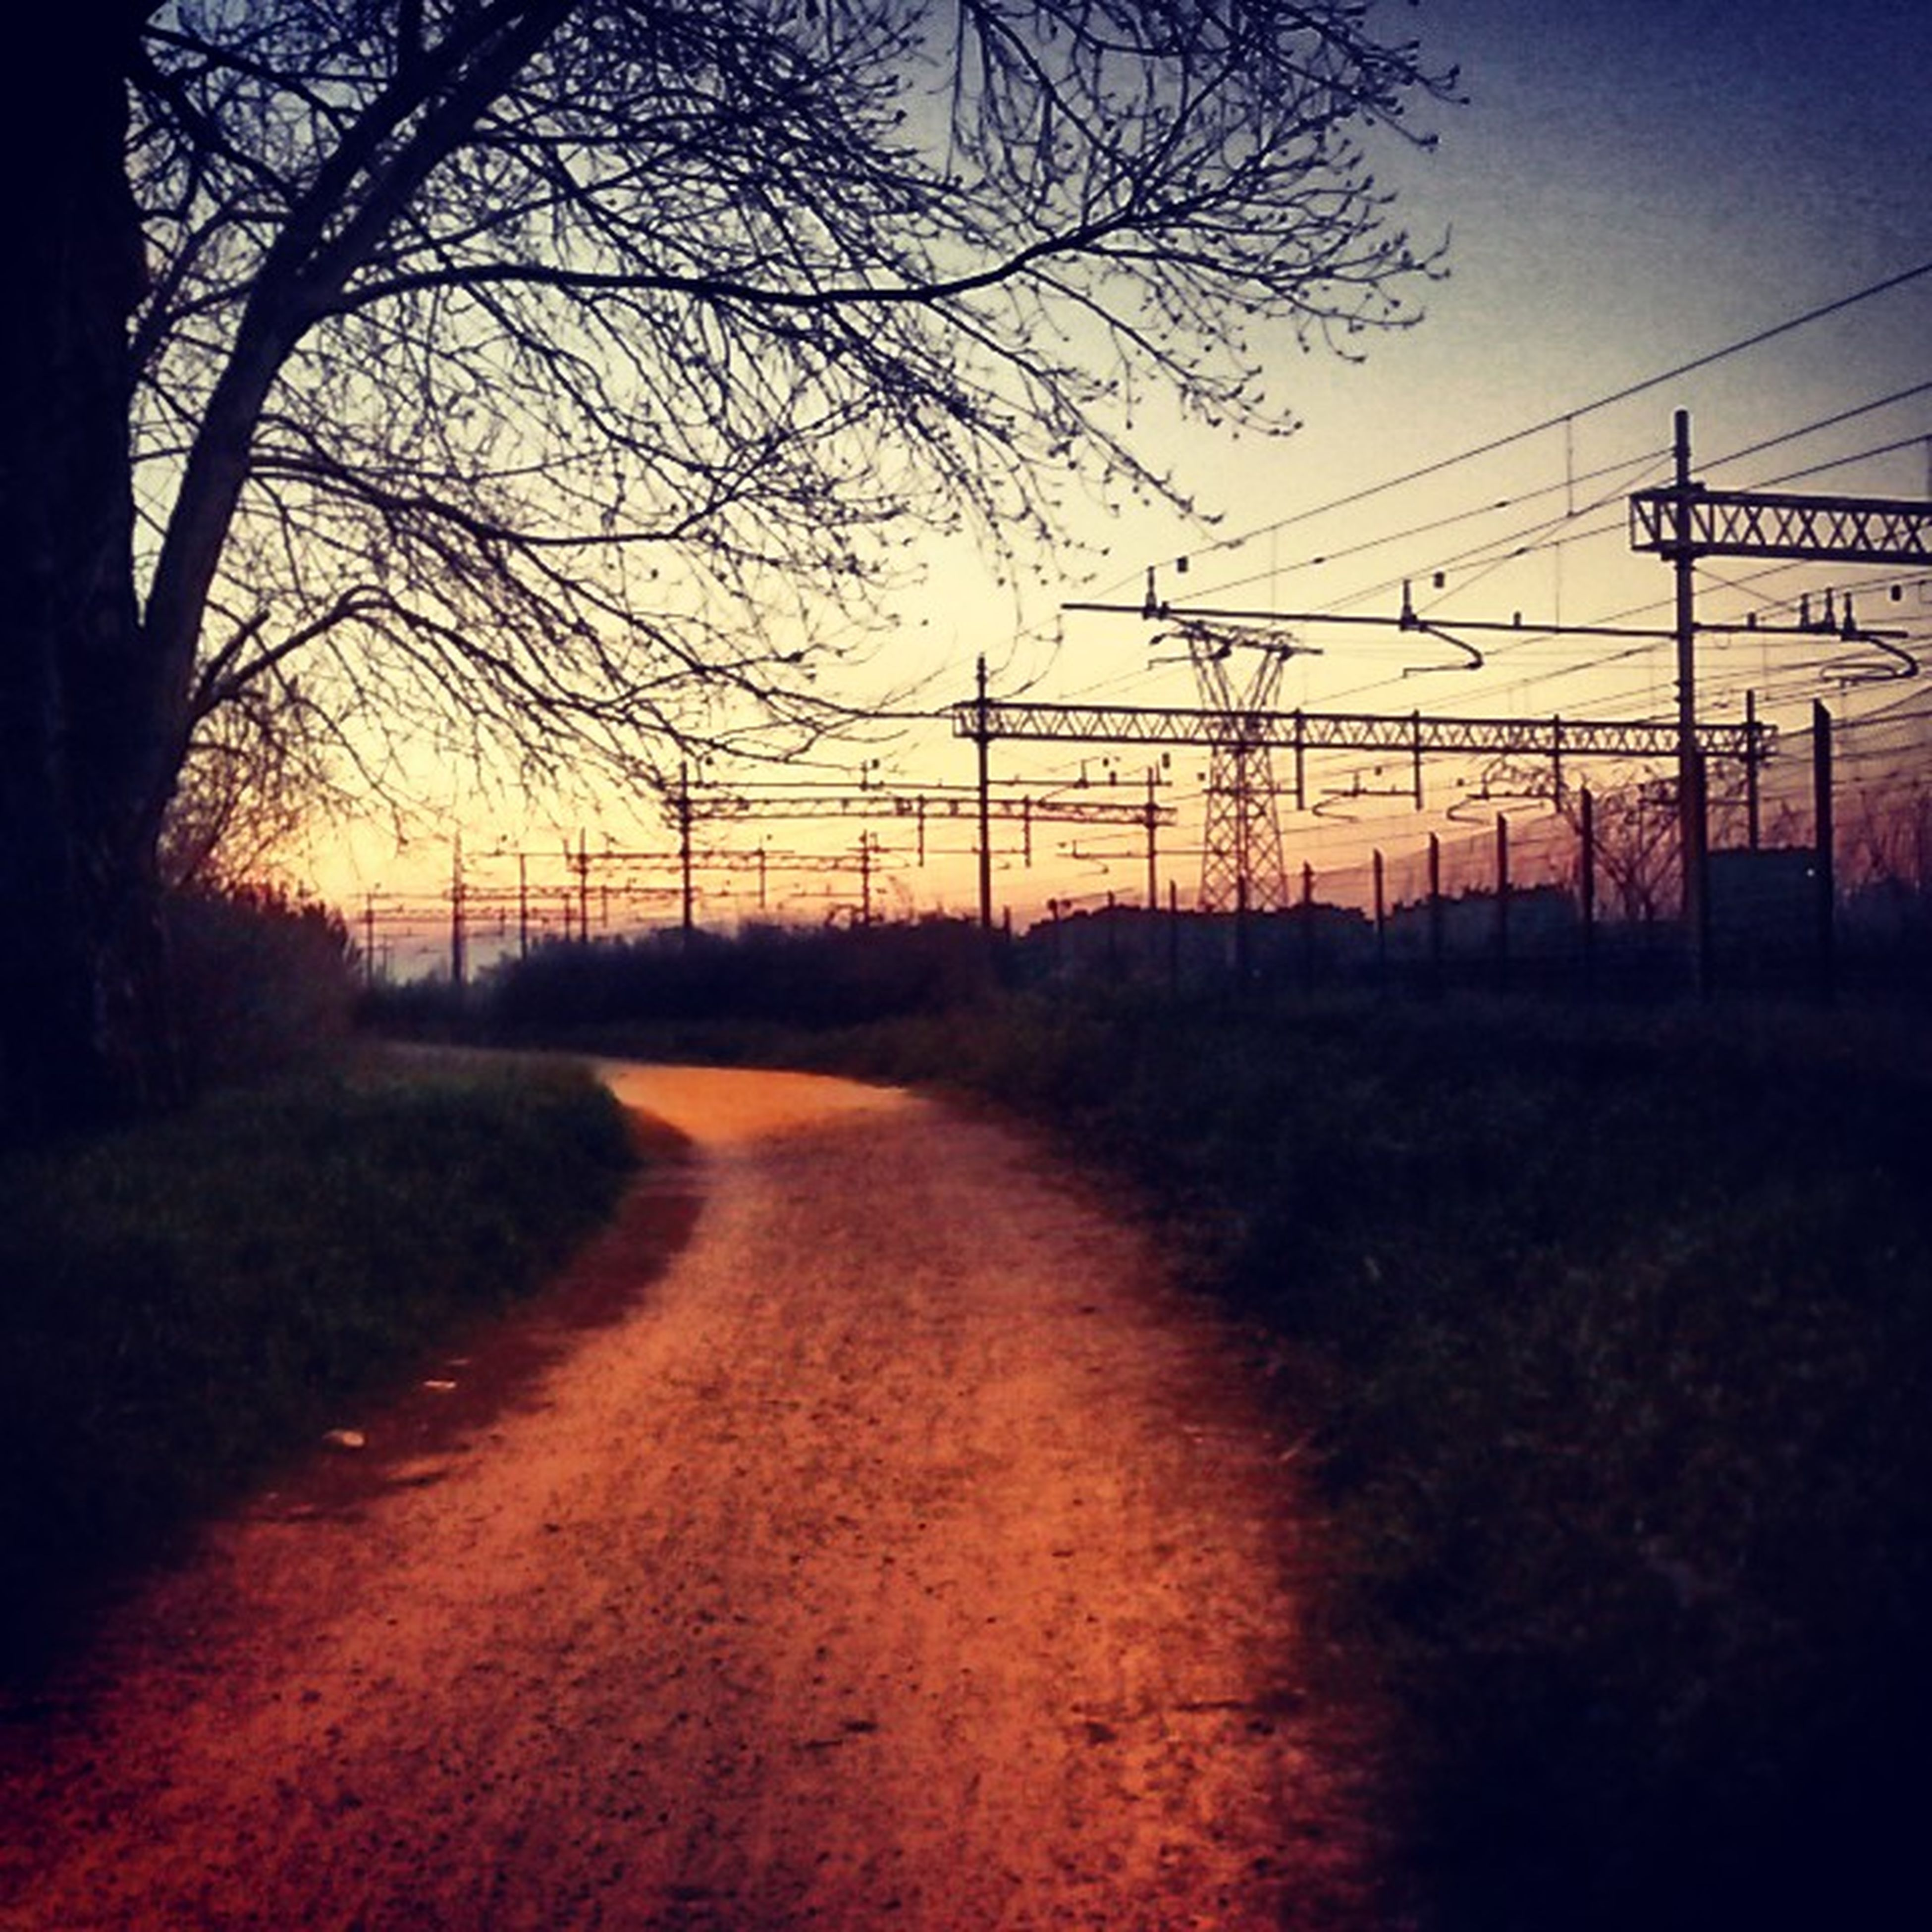 sunset, tree, the way forward, sky, transportation, orange color, electricity pylon, road, bare tree, tranquility, diminishing perspective, landscape, power line, silhouette, tranquil scene, nature, scenics, field, vanishing point, country road